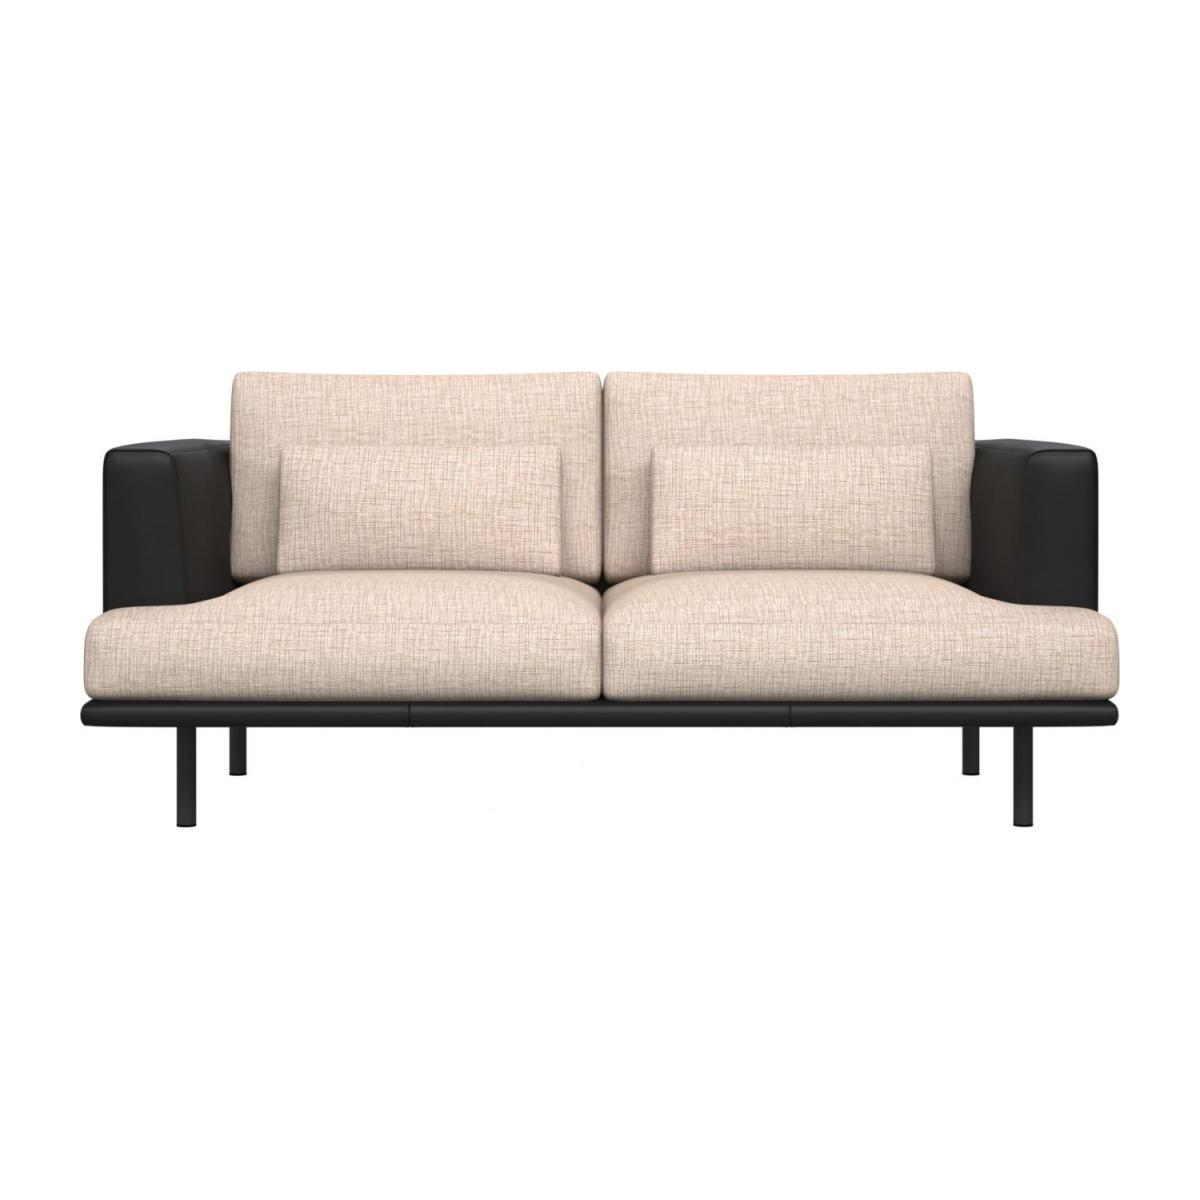 2 seater sofa in Ancio fabric, nature with base and armrests in black leather n°2